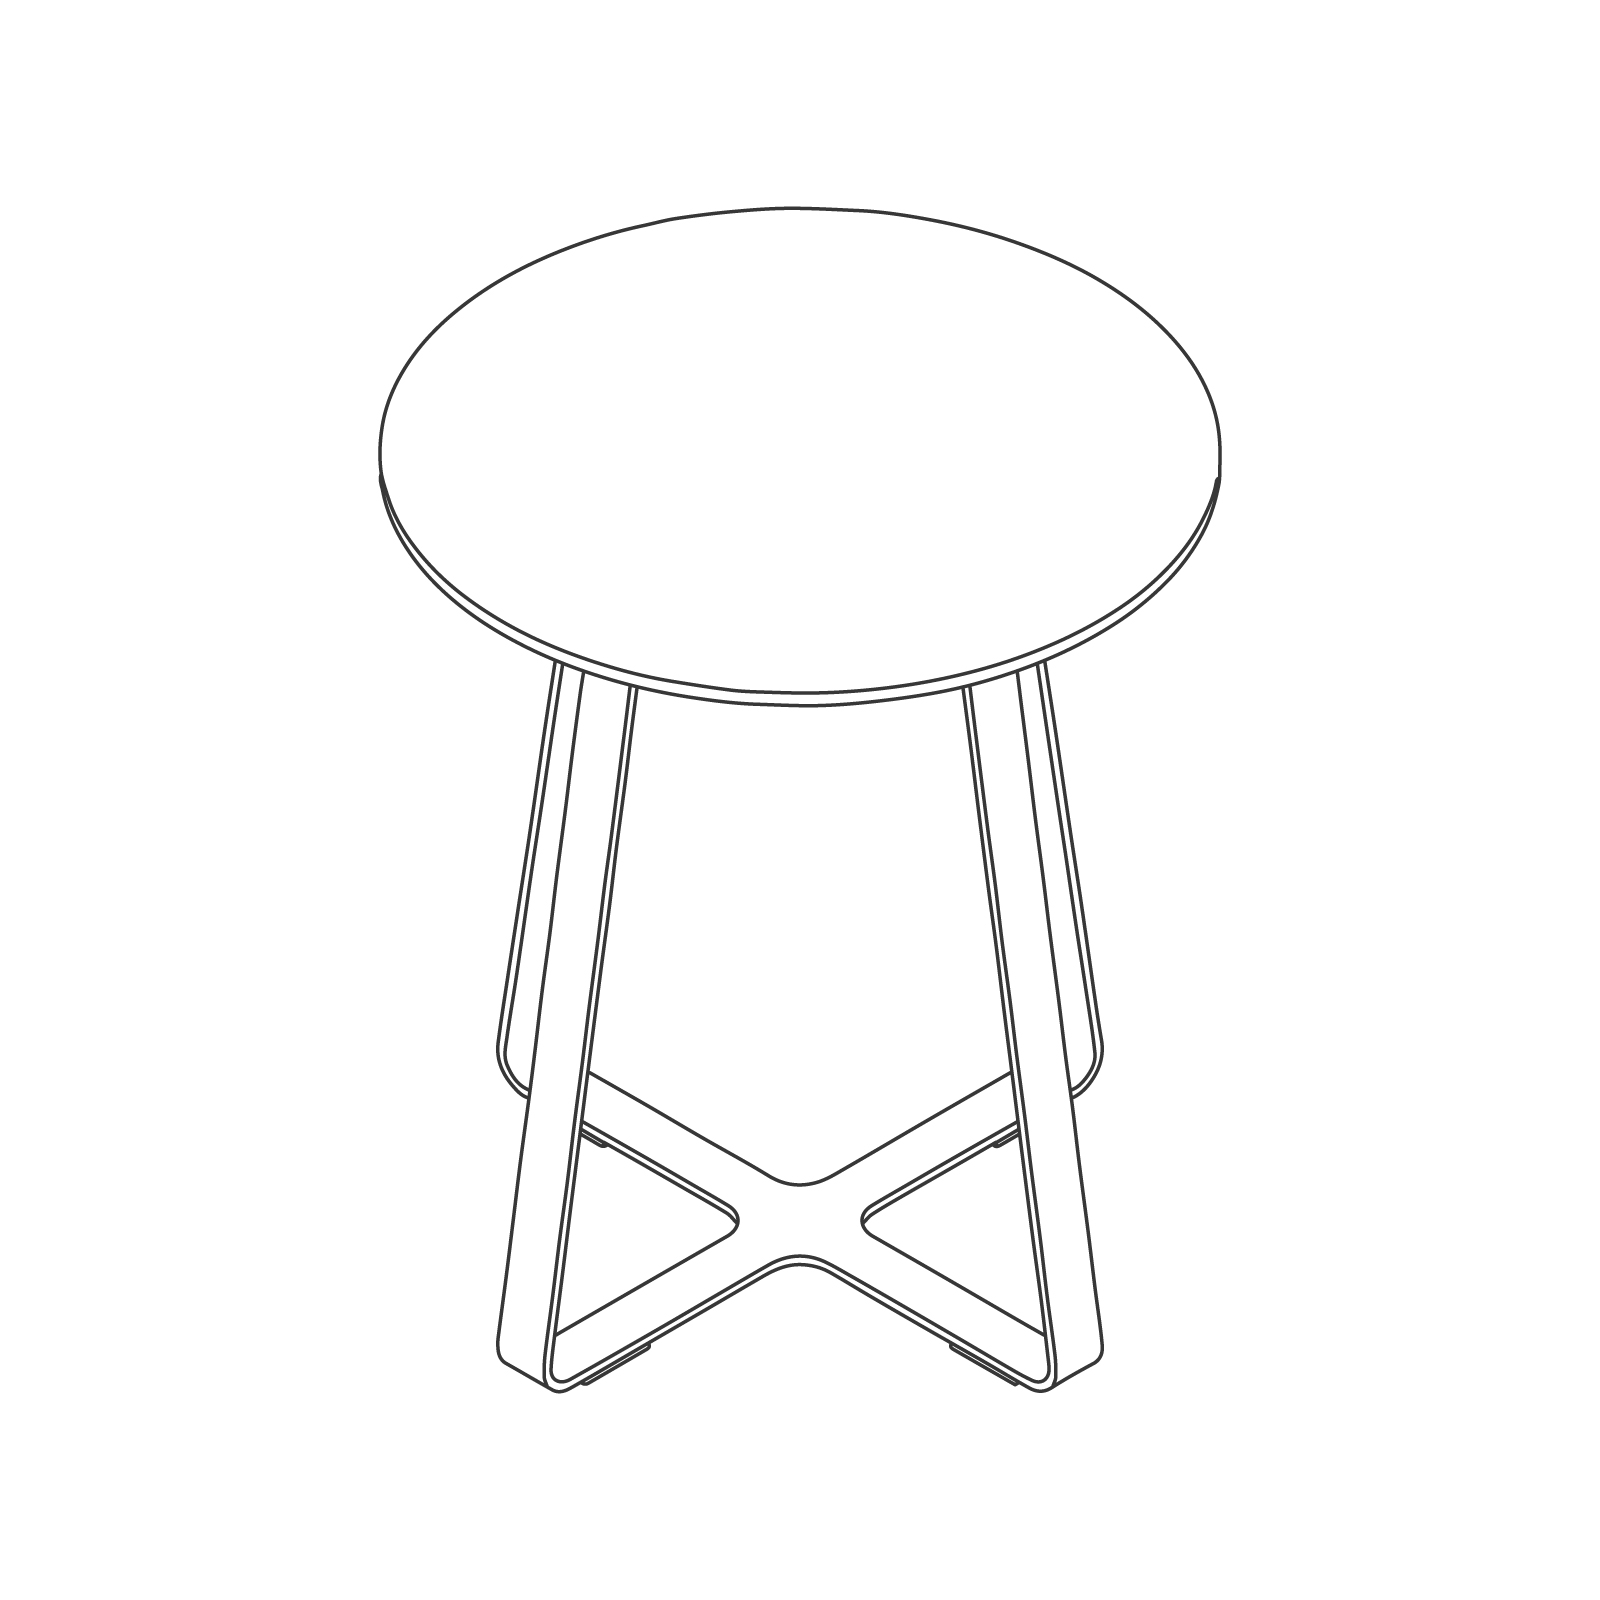 A line drawing of Frog Café Table–Round.